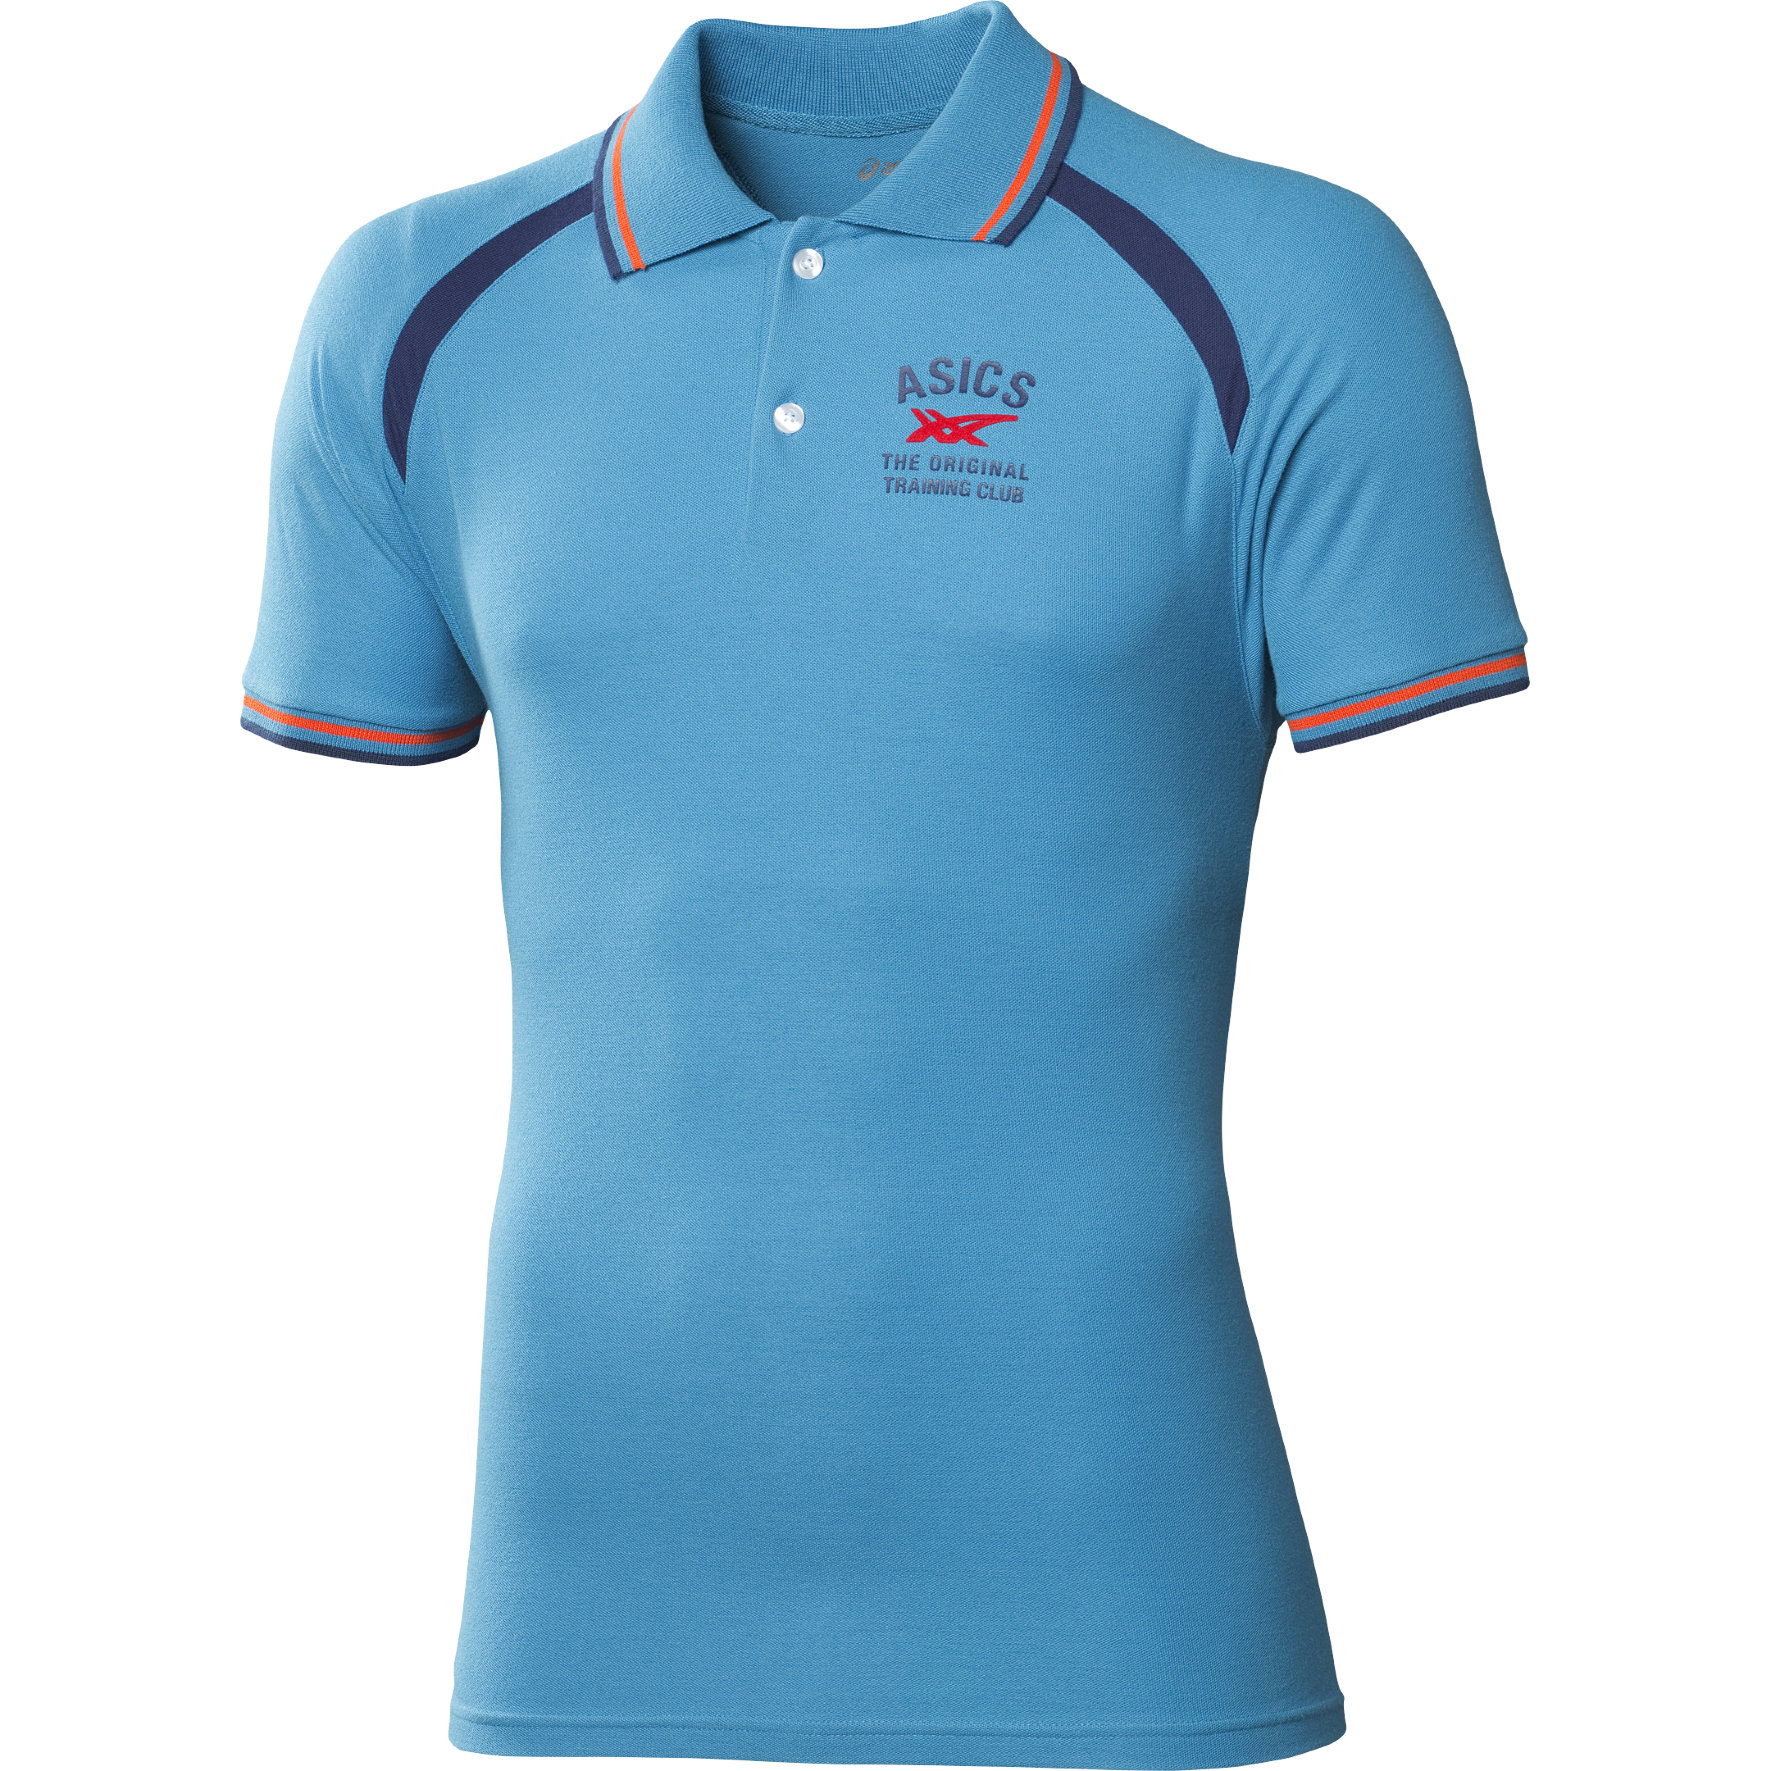 Asics SS Polo in Blue